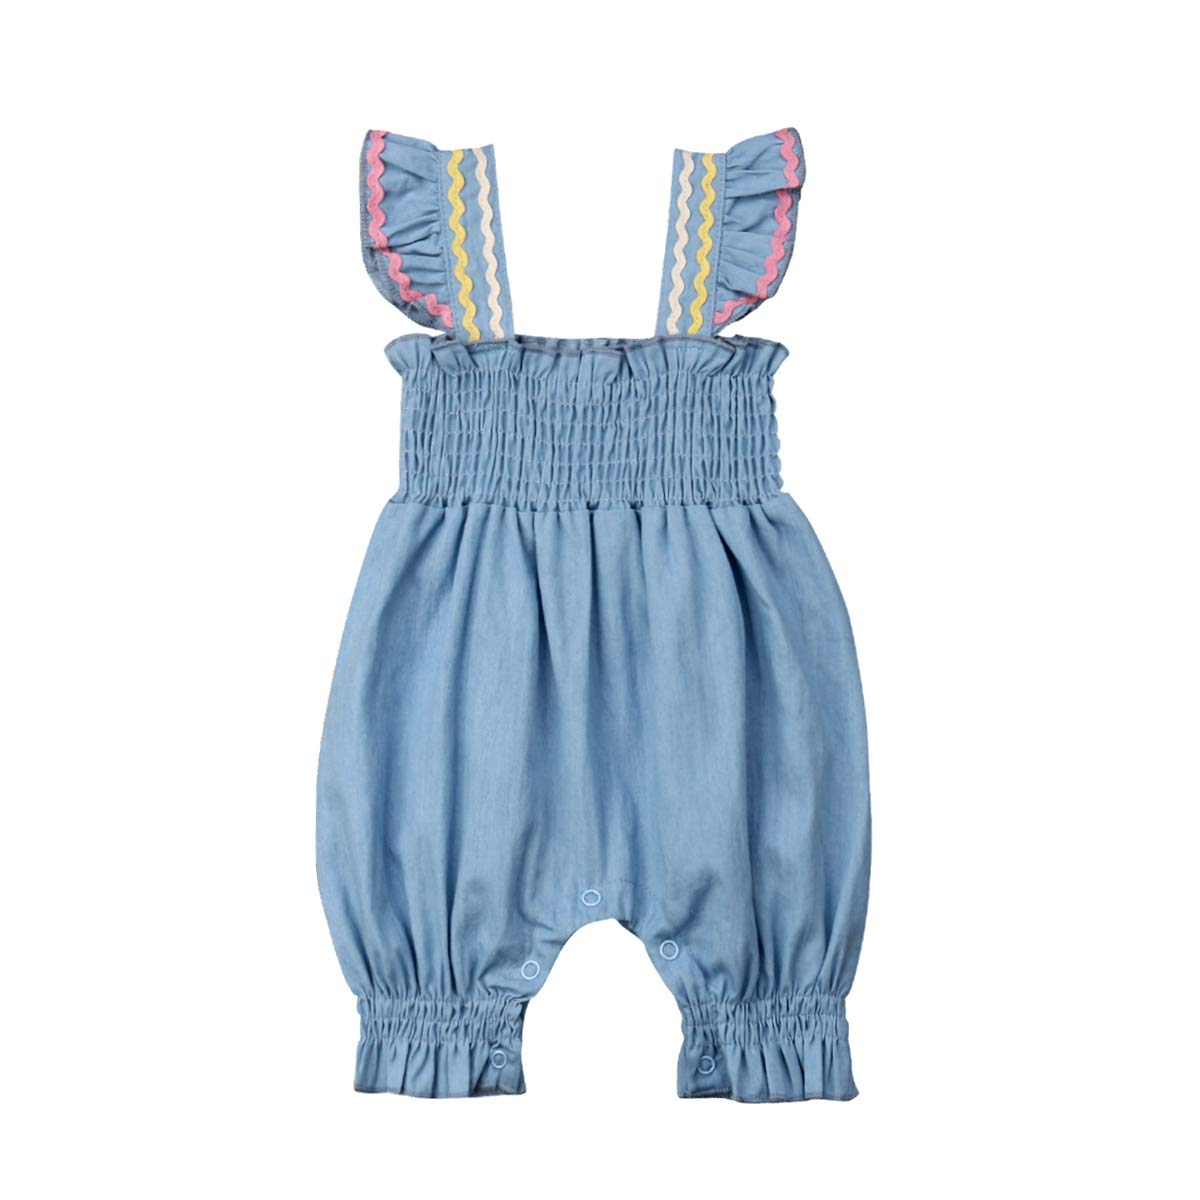 Baby Girls Romper Halter Sleeve Bodysuit Flexible Jumpsuit Summer Clothes Outfits Sunsuit 0-18M